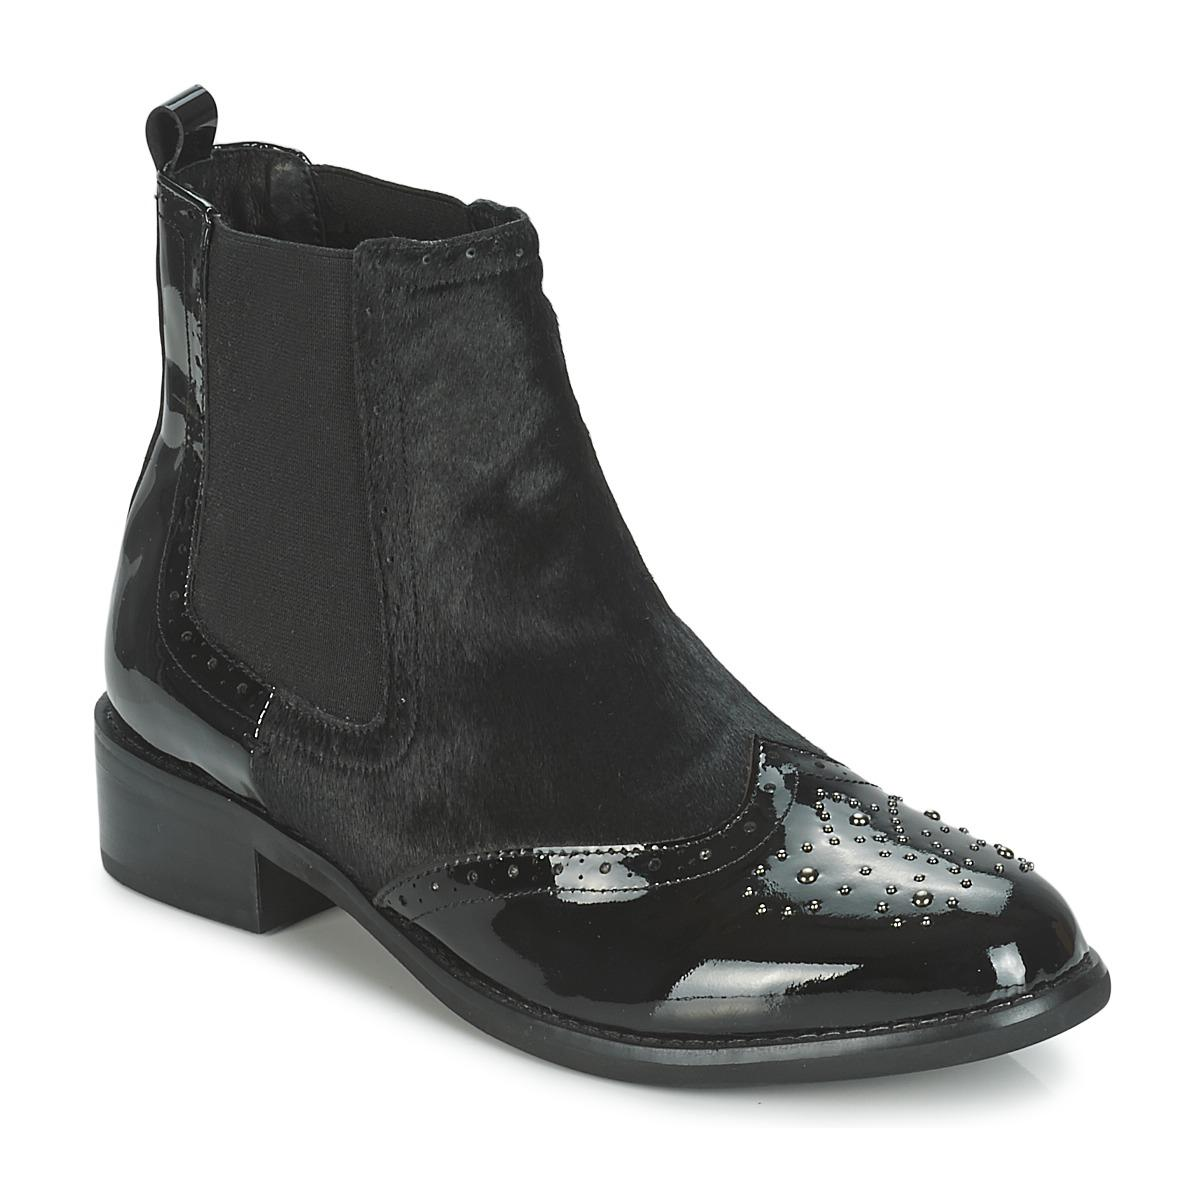 Moda In Pelle Auletti Low Ankle Boots in Black - Lyst 352185526074